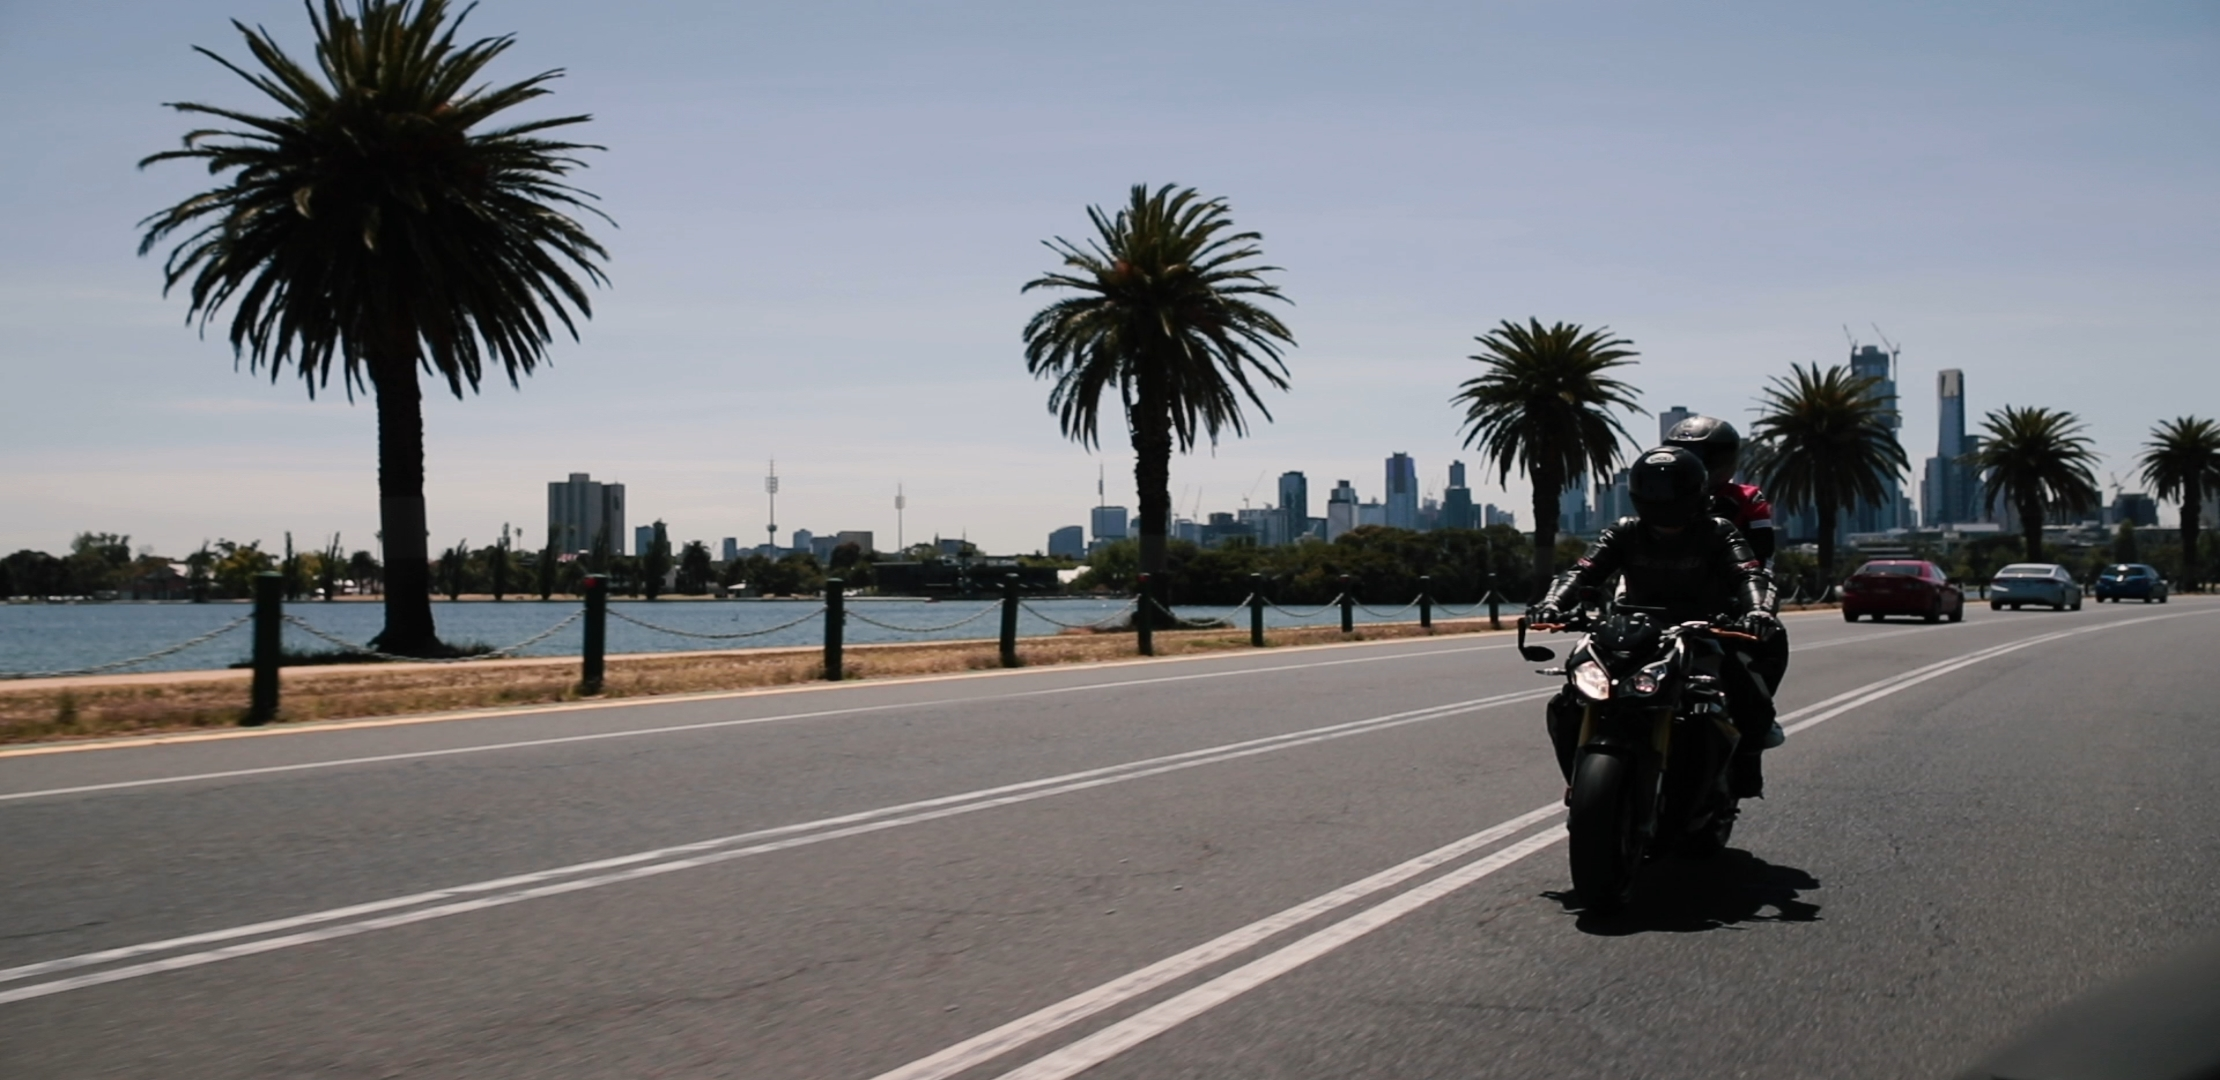 Female rider with female pillion on black BMW motorcycle riding on a road next to row of palm trees